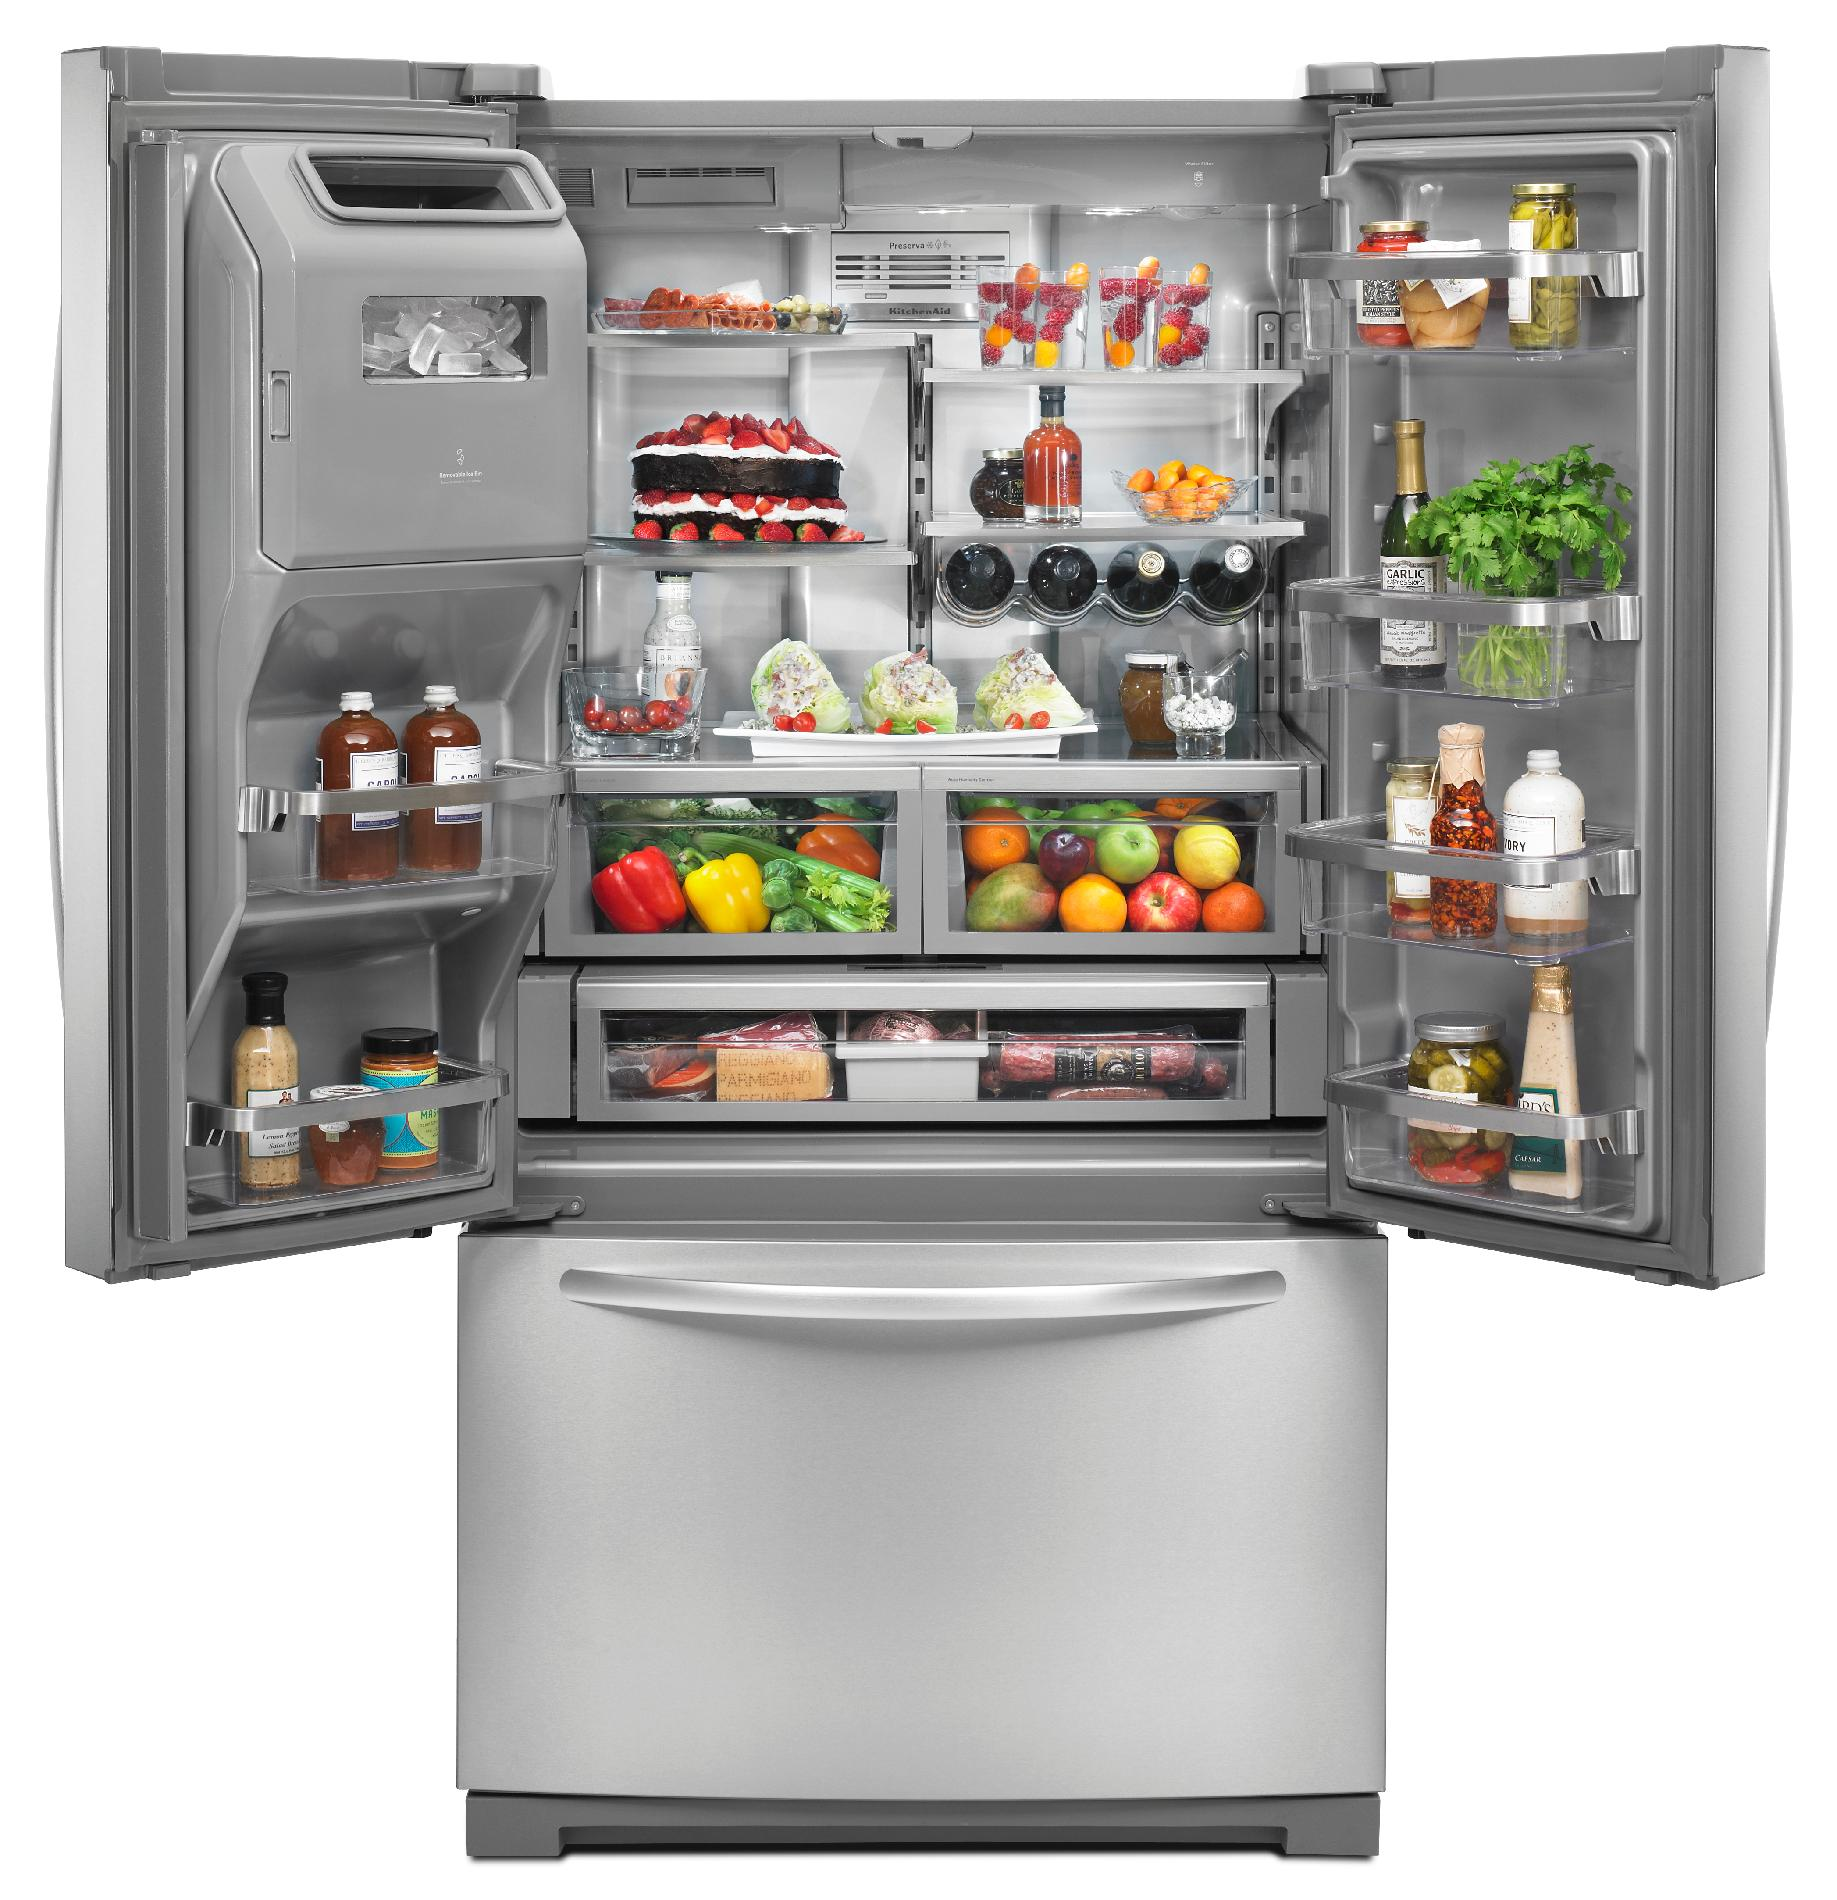 KitchenAid 26.8 cu. ft. French Door Refrigerator w/ Platinum Interior - Stainless Steel